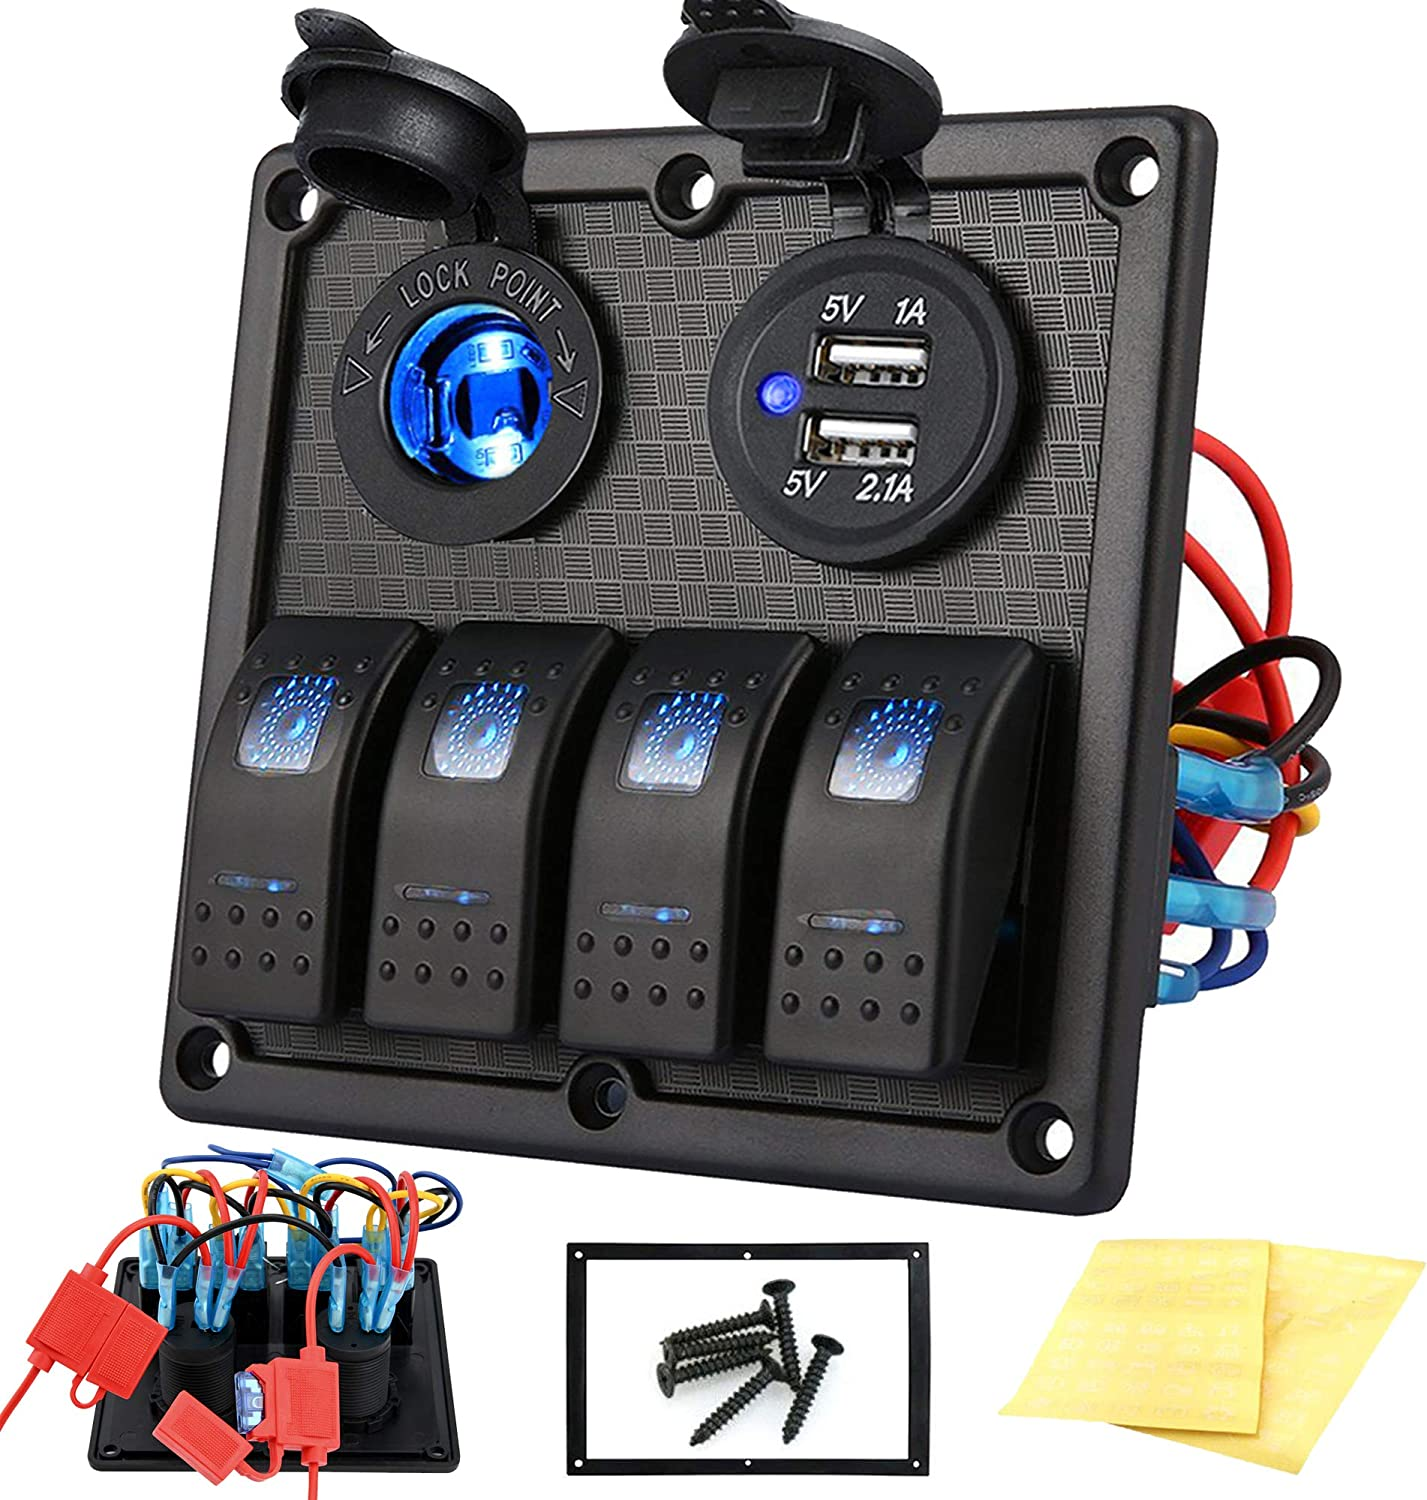 amazon.com : kohree 4 gang marine boat rocker switch panel, 12v waterproof  led lighted toggle switches fuse breaker protected control with 12 volt  marine usb power outlet for car boat rv scooter  amazon.com